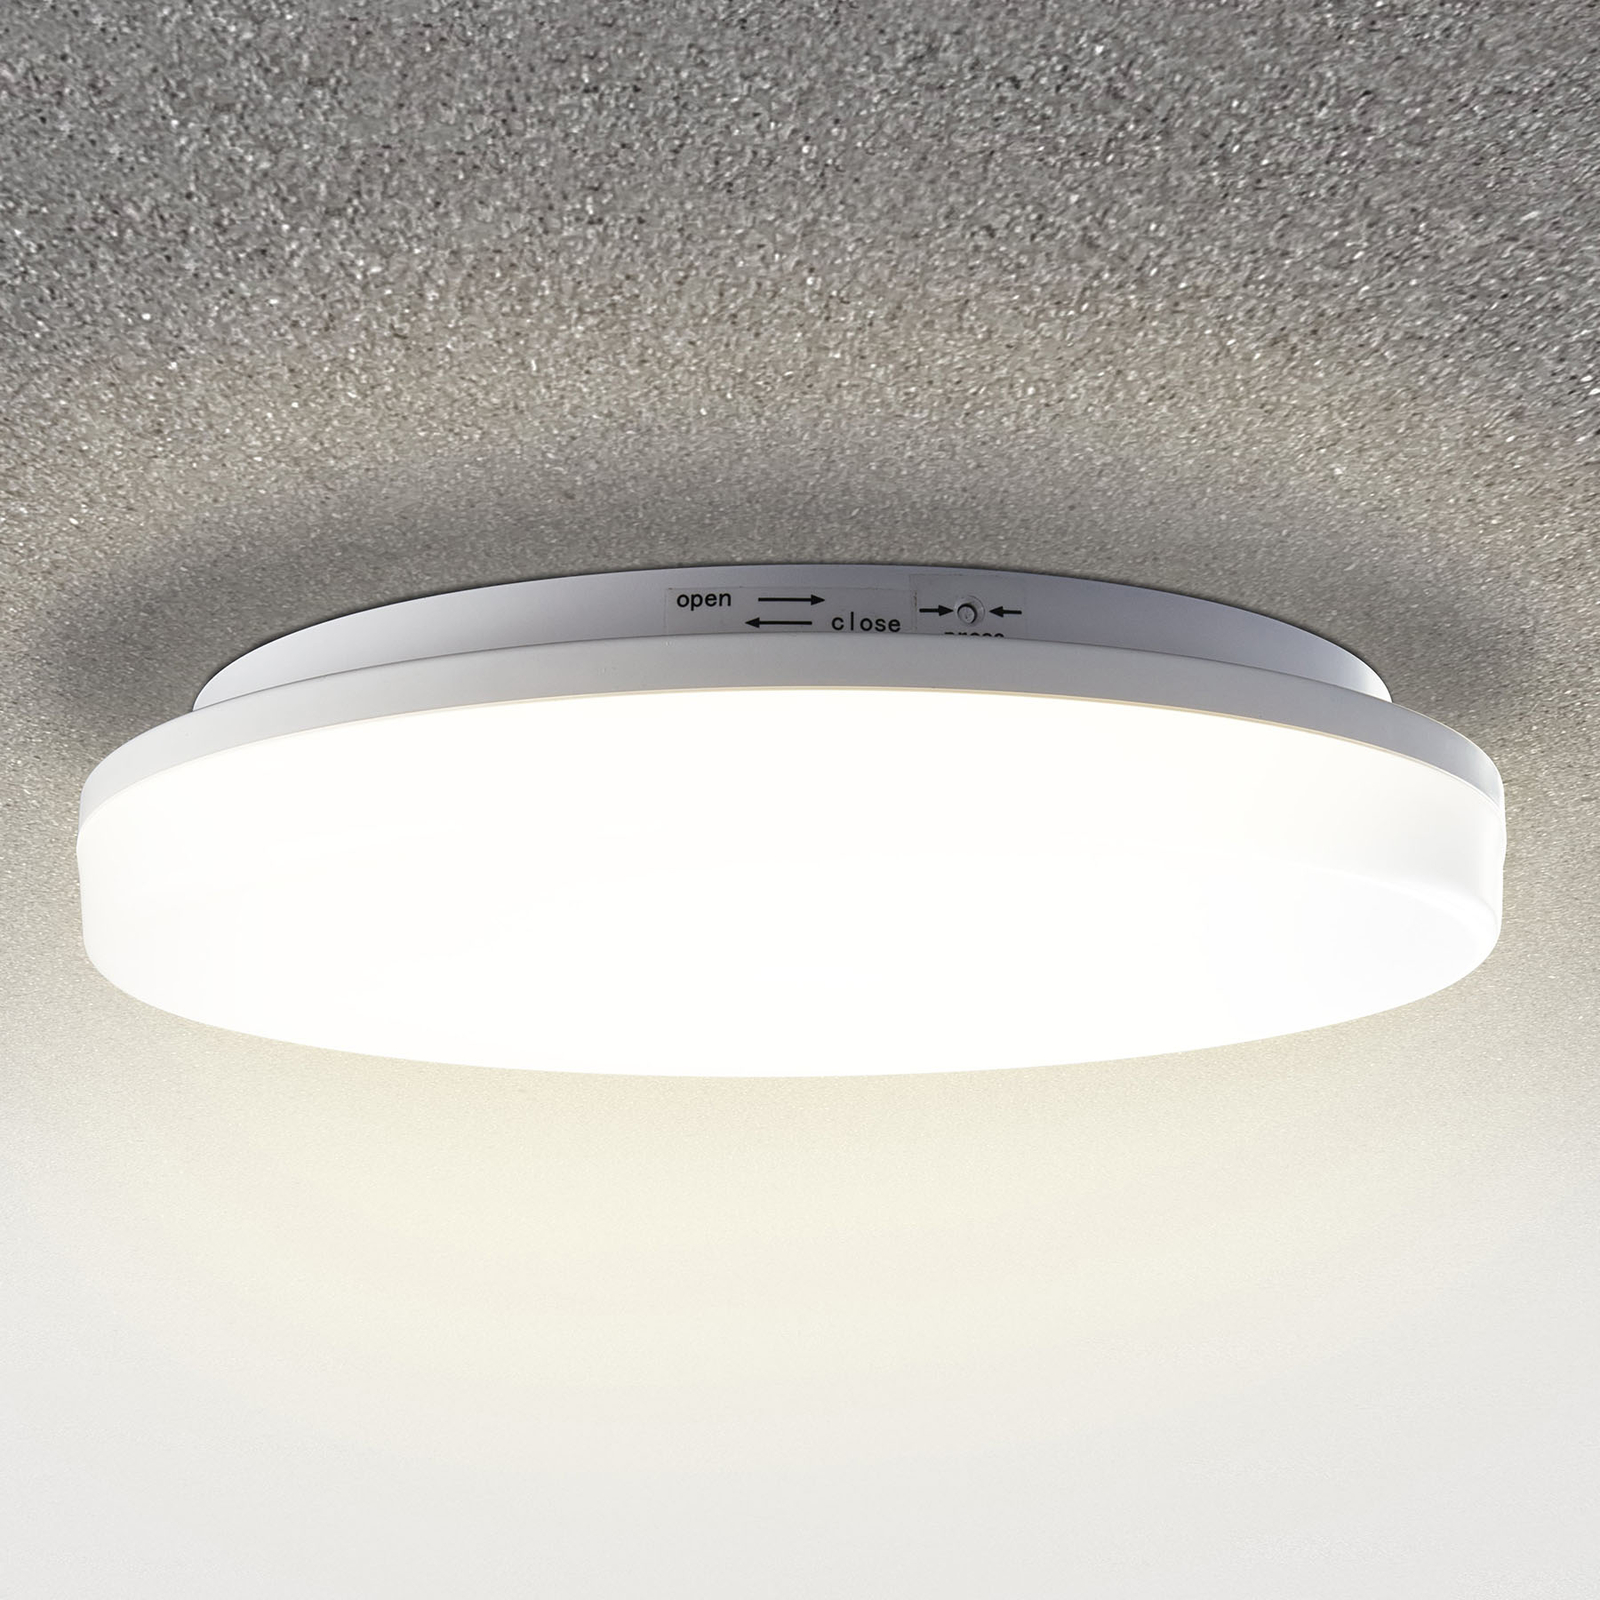 Pronto LED ceiling light with a motion detector_9506385_1